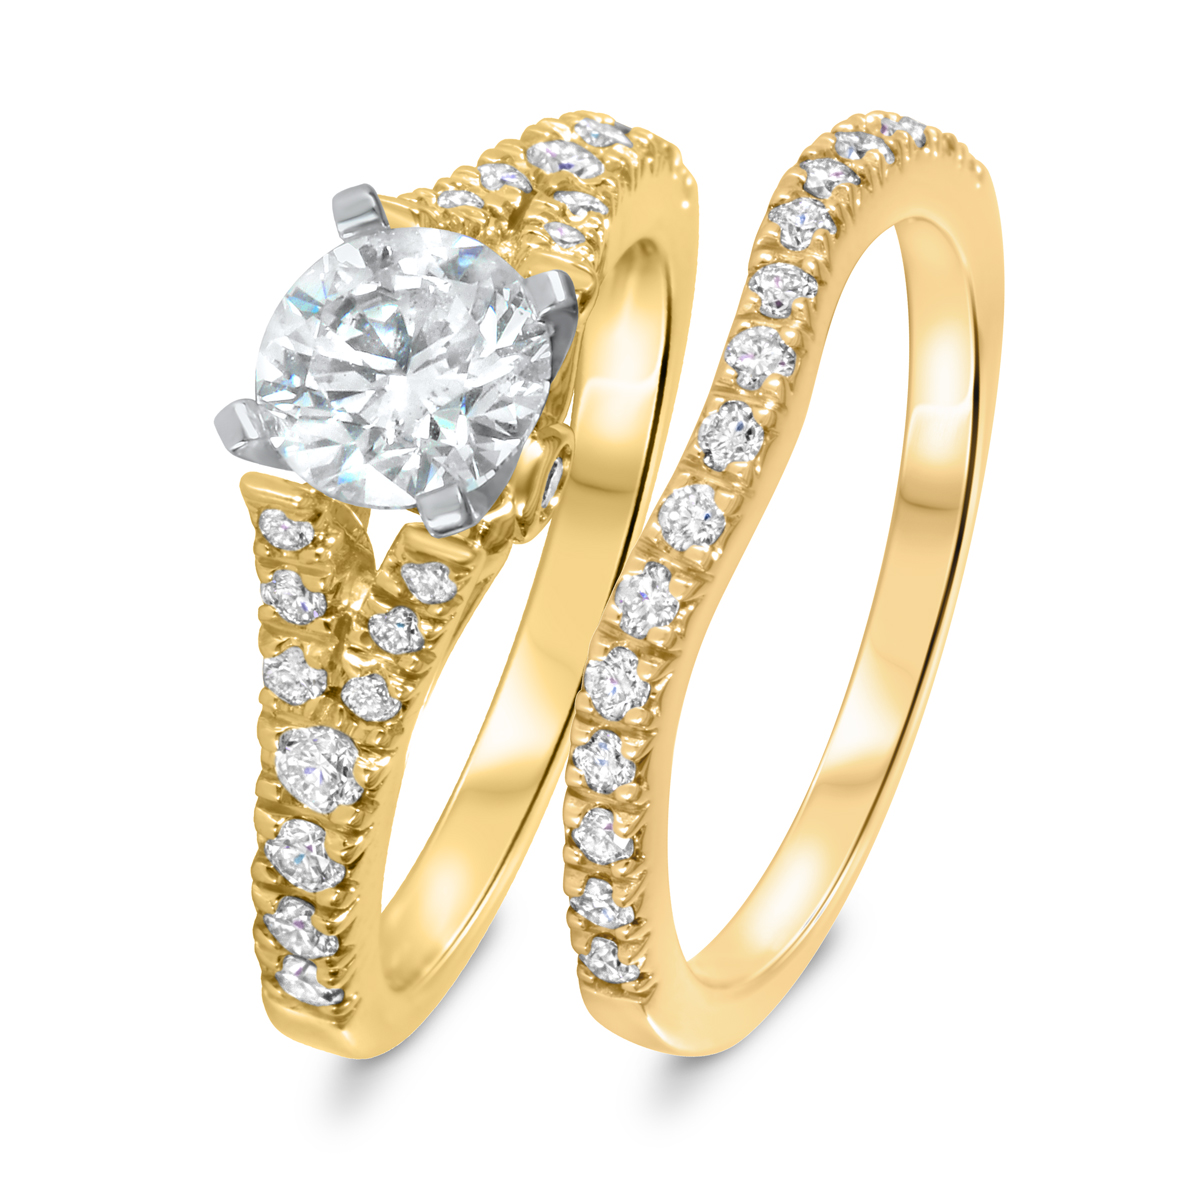 1 3/4 CT. T.W. Diamond Women's Bridal Wedding Ring Set 10K Yellow Gold